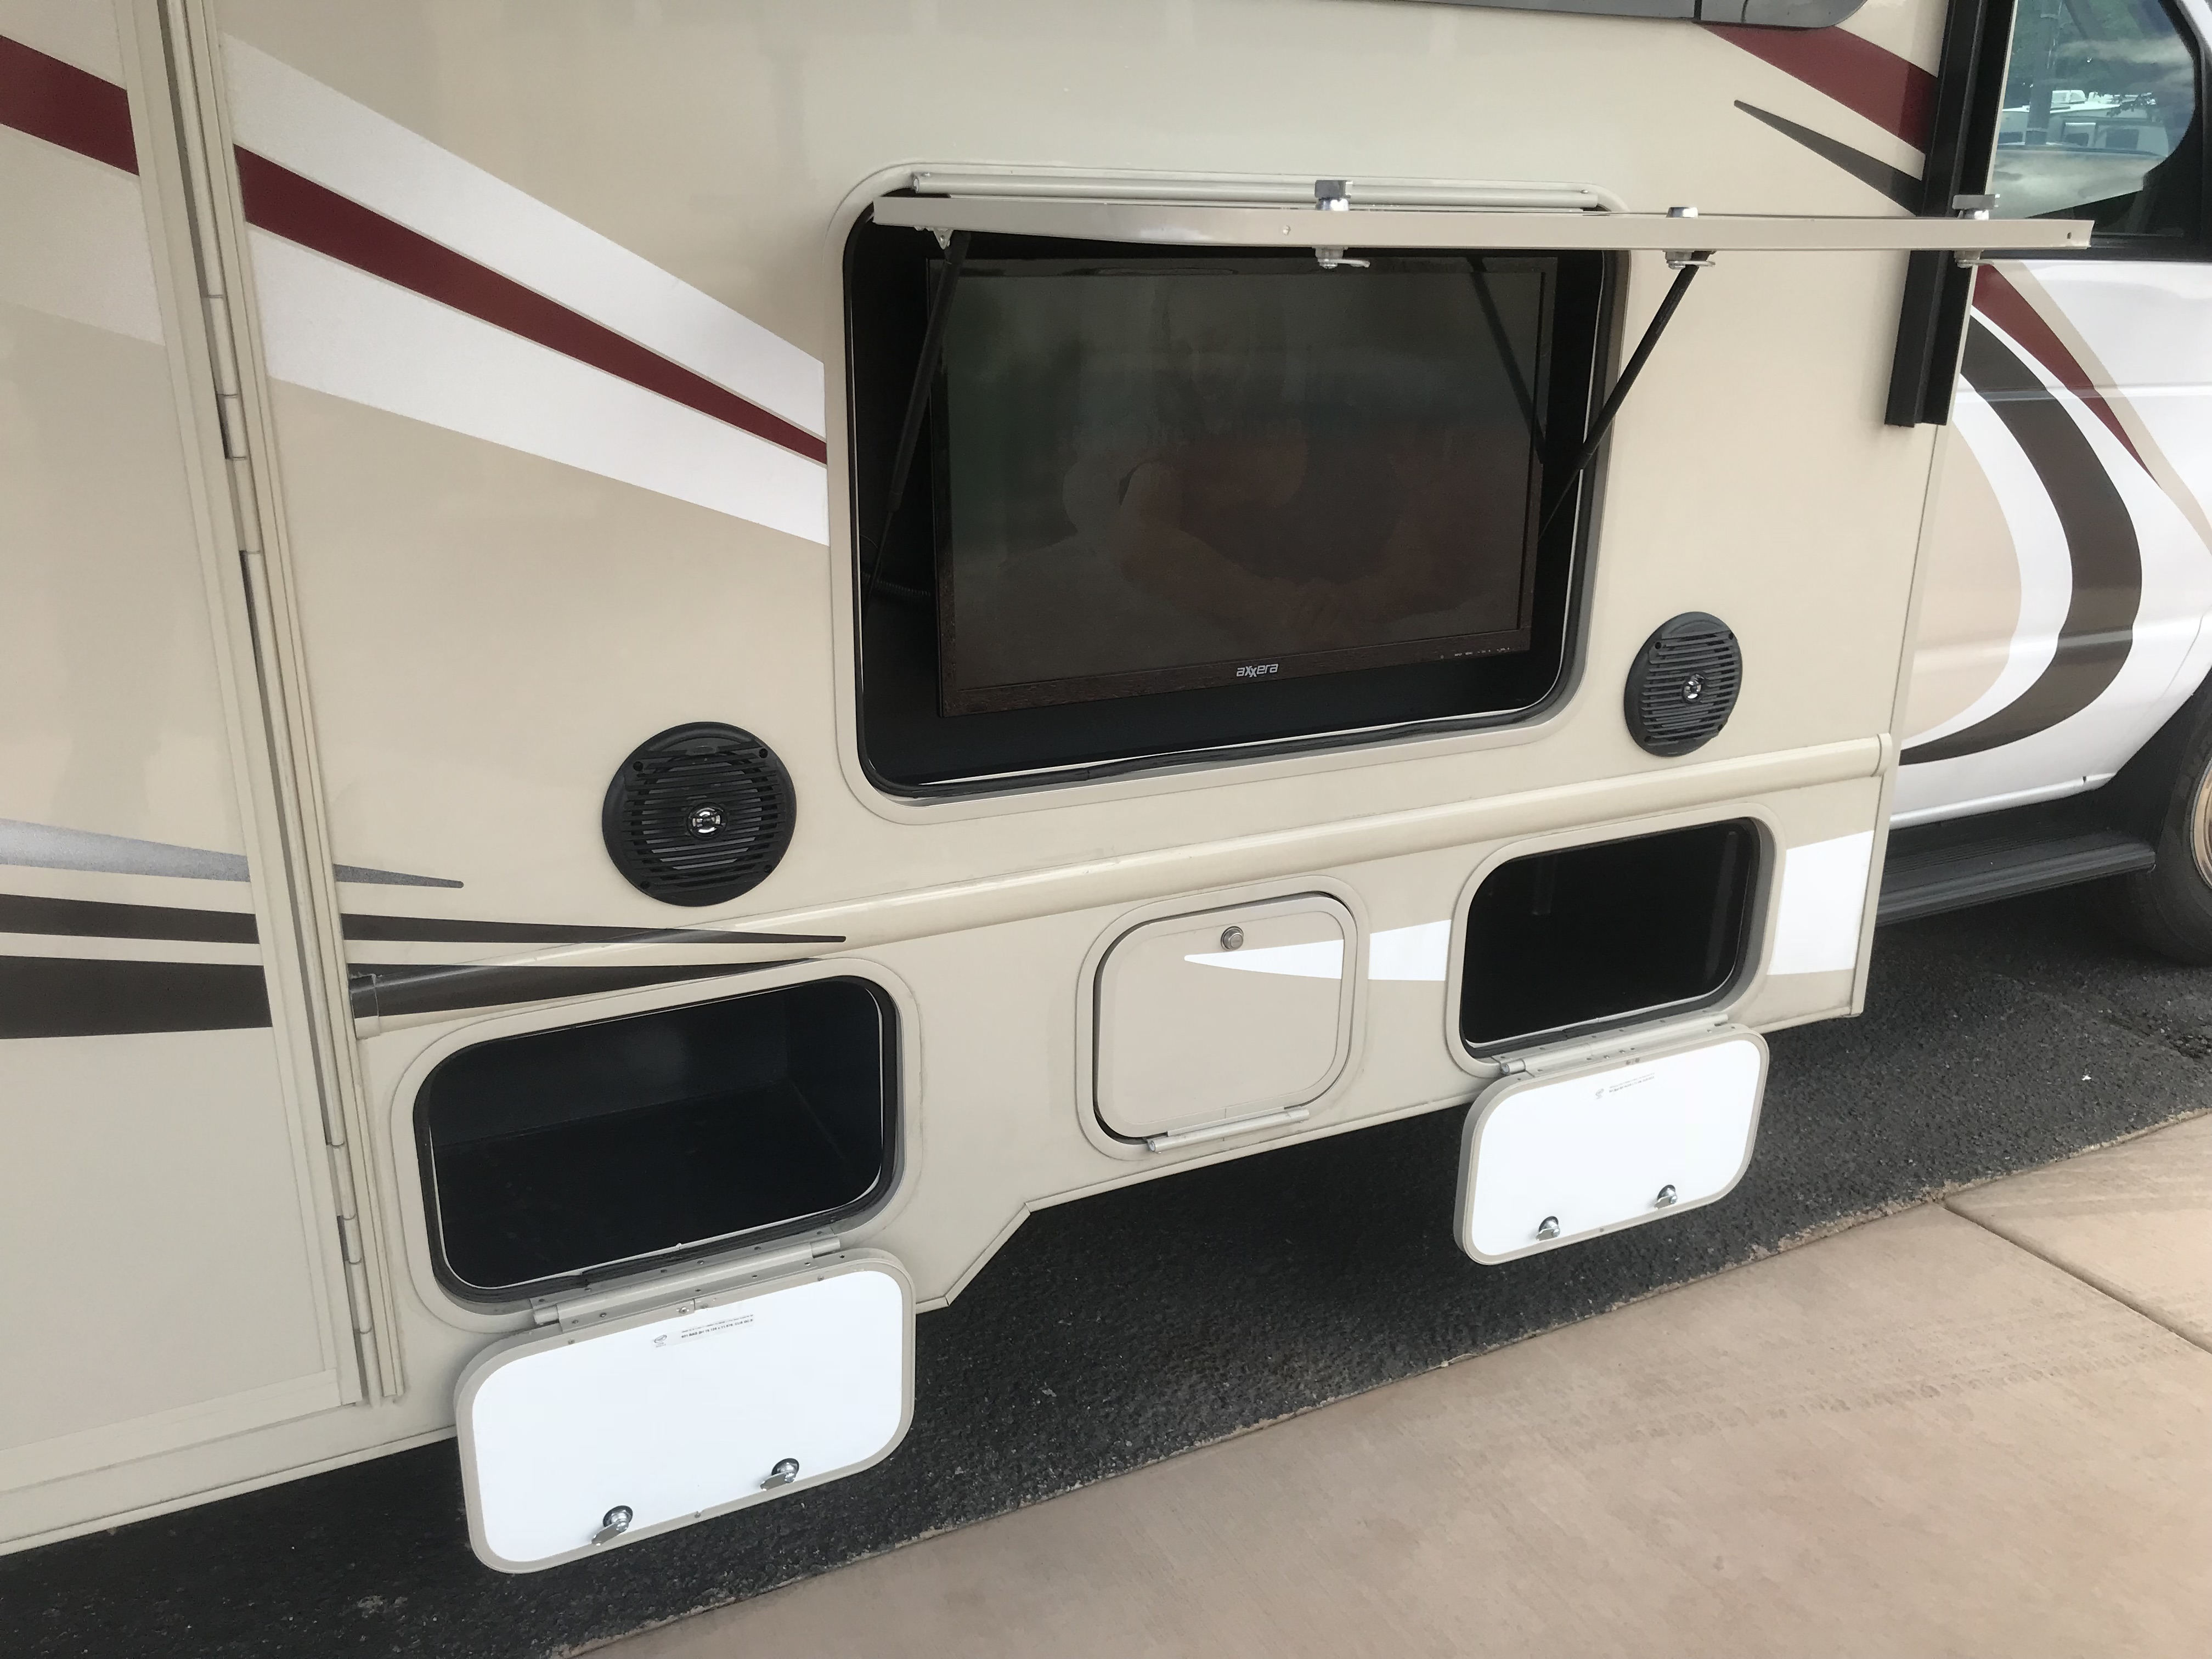 Outdoor TV and speakers are great for enjoying entertainment outdoors. Chateau 31W 2018